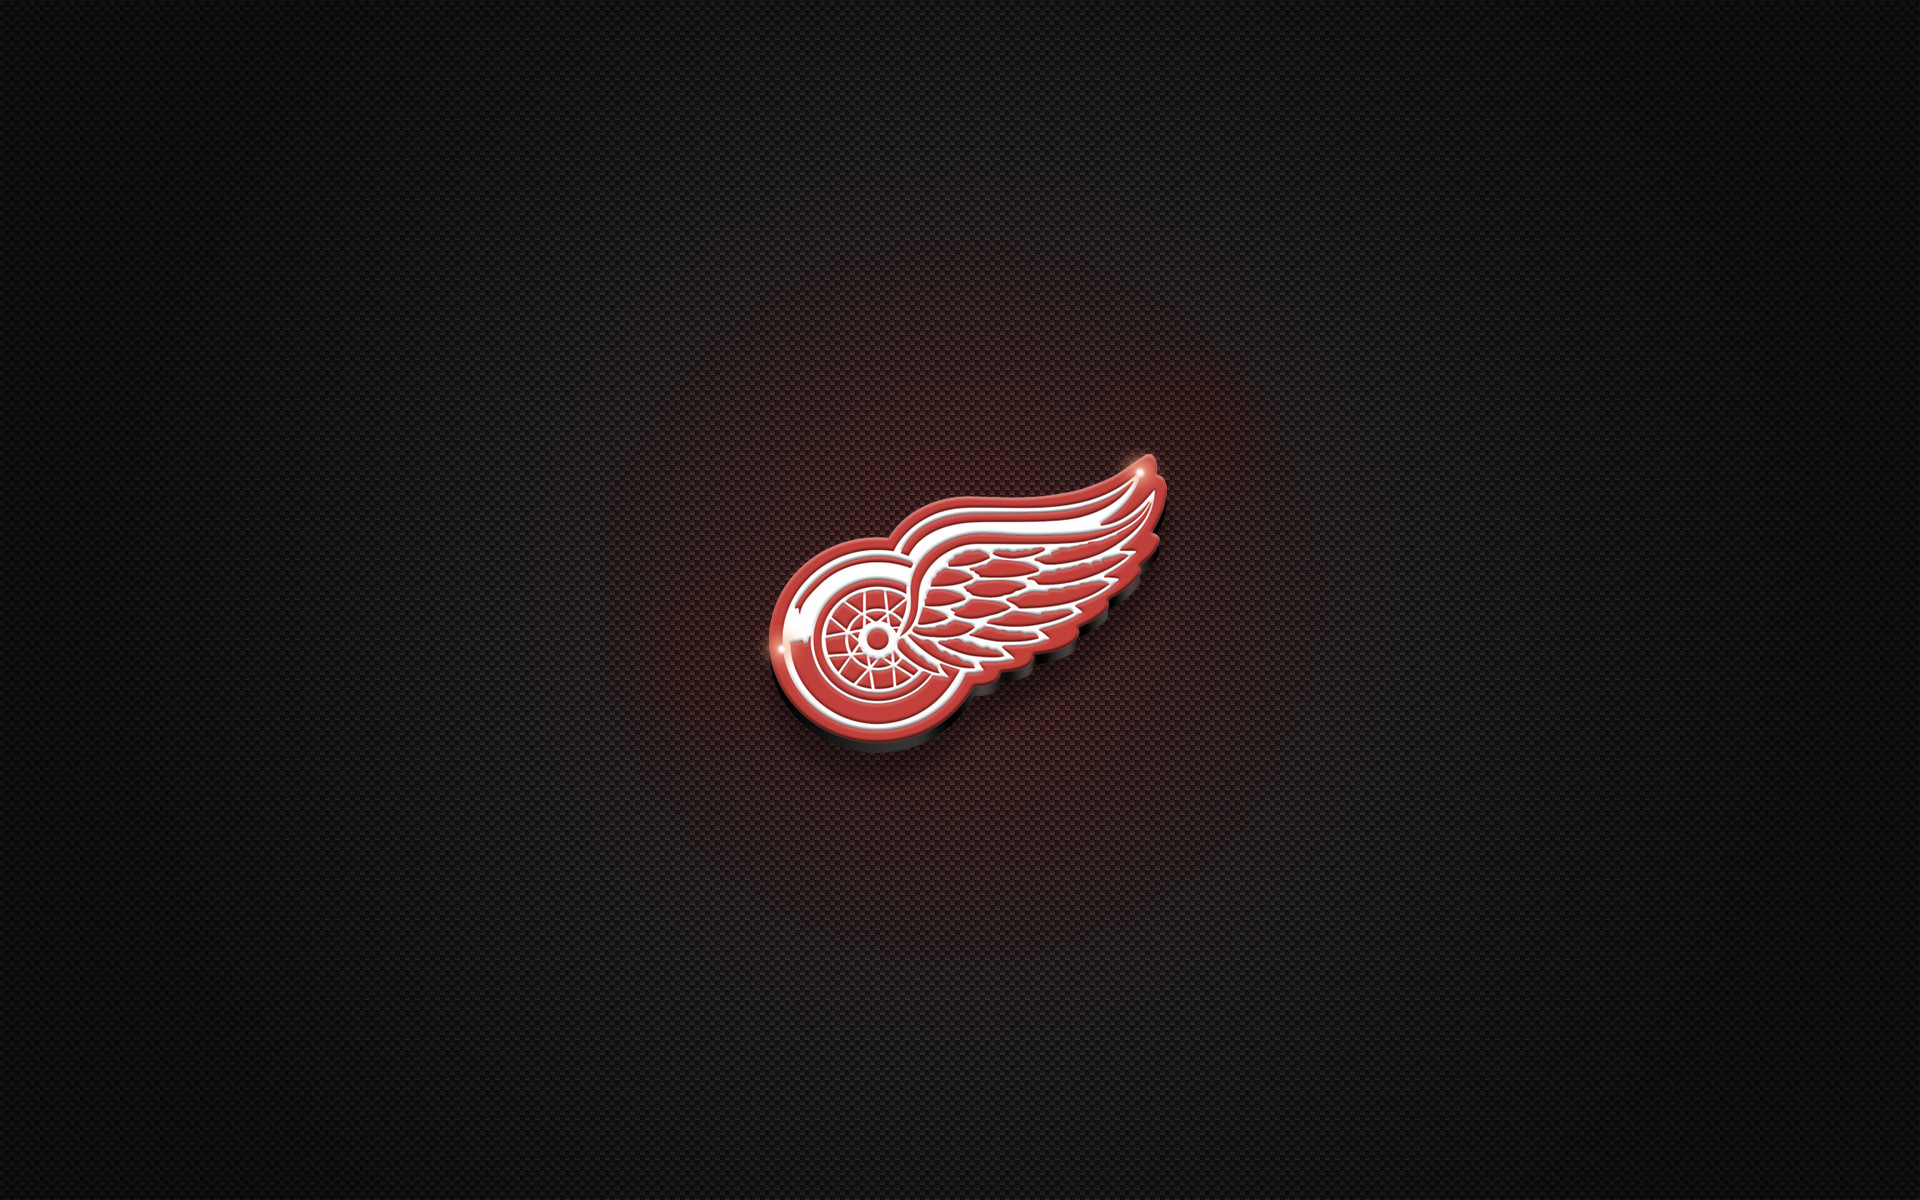 1920x1200 hd detroit red wings wallpaper hd desktop wallpapers cool background photos  free images desktop backgrounds high quality colourful 4k 1920×1200  Wallpaper HD